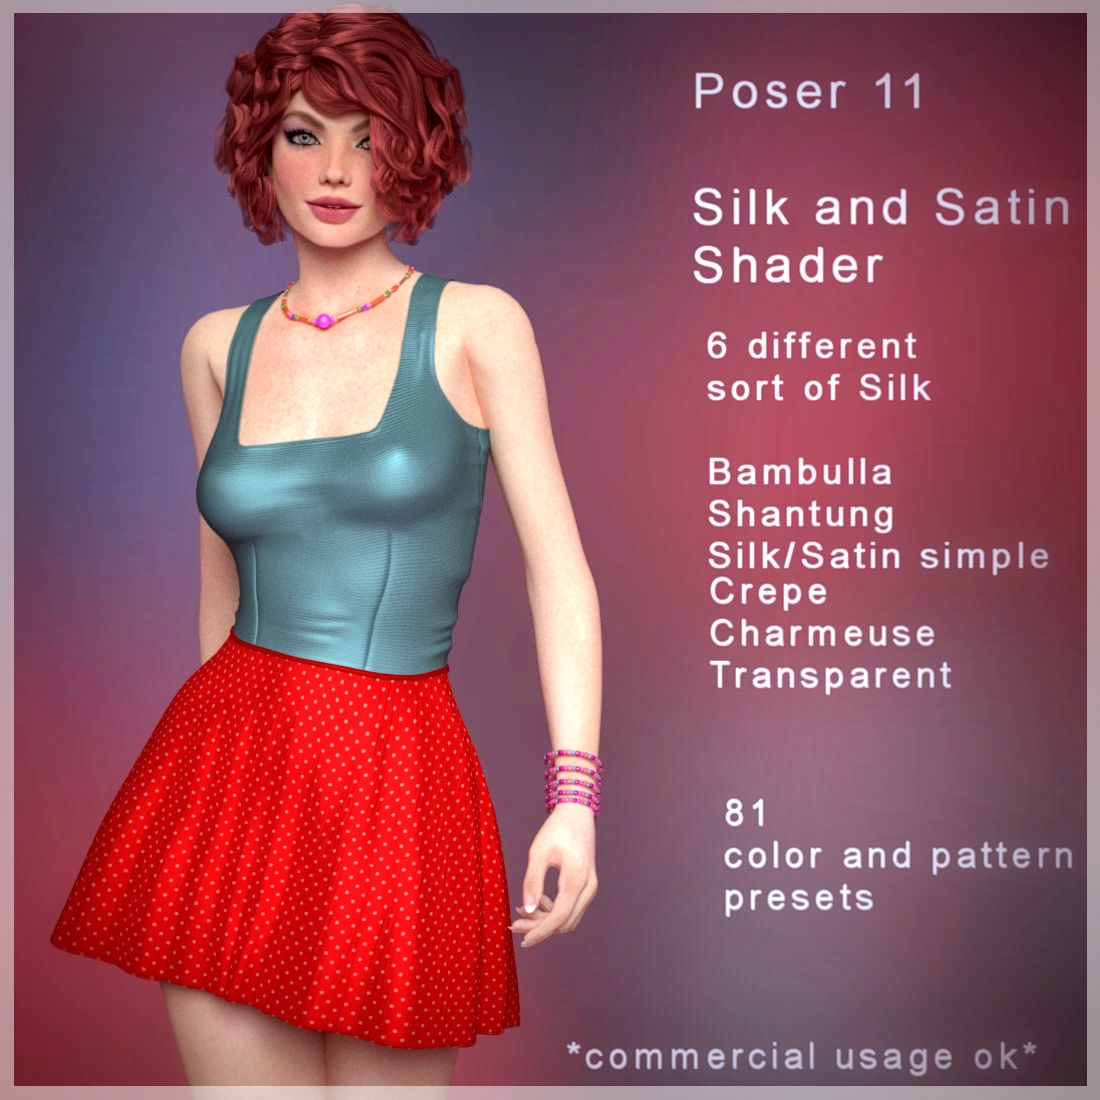 Silk & Satin Poser Shaders [Exclusive]